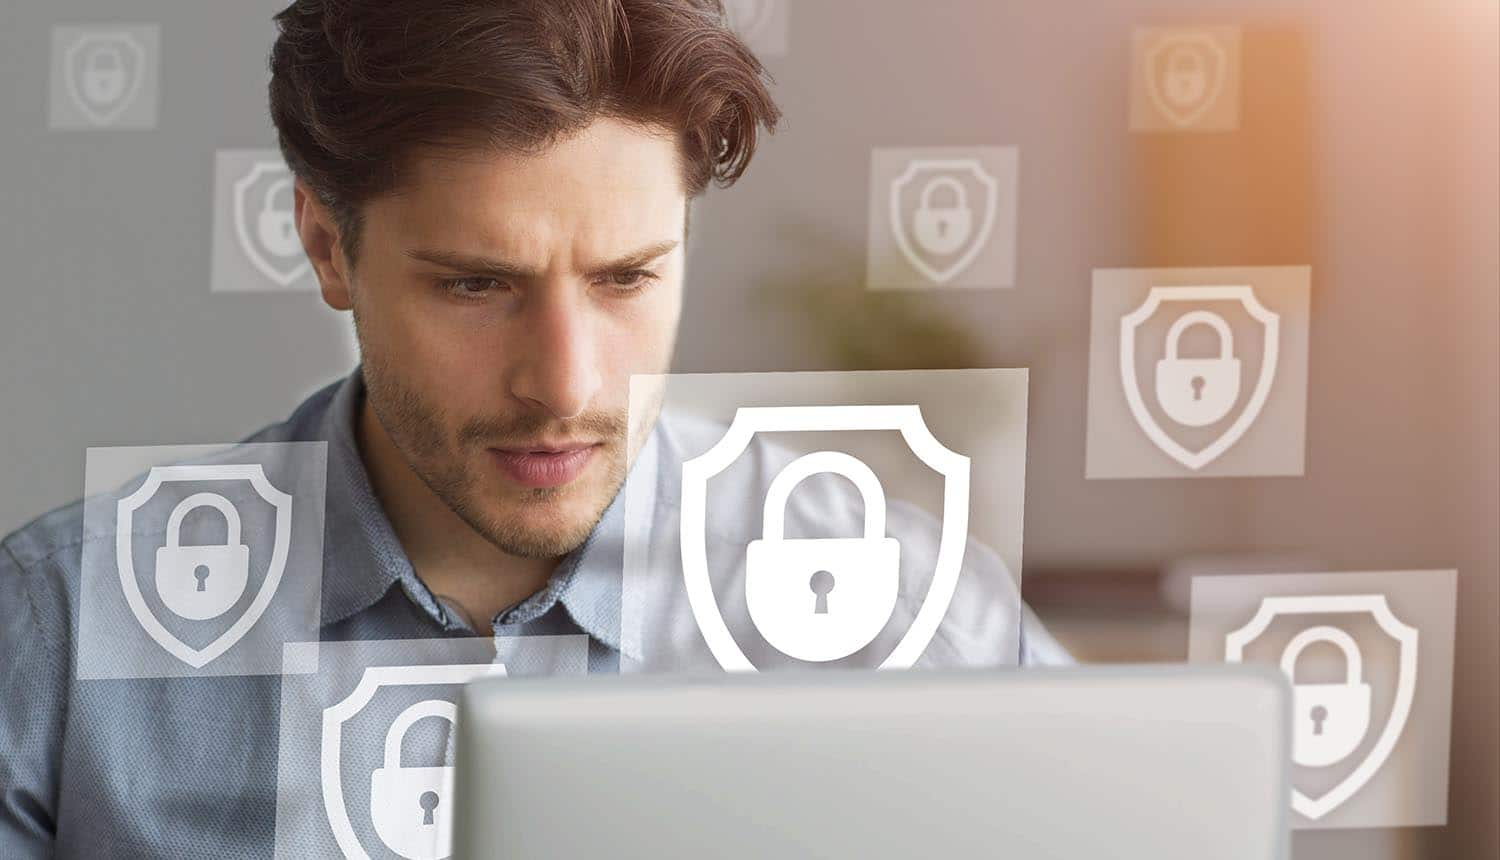 Business project, data Young man works at laptop with images of locks